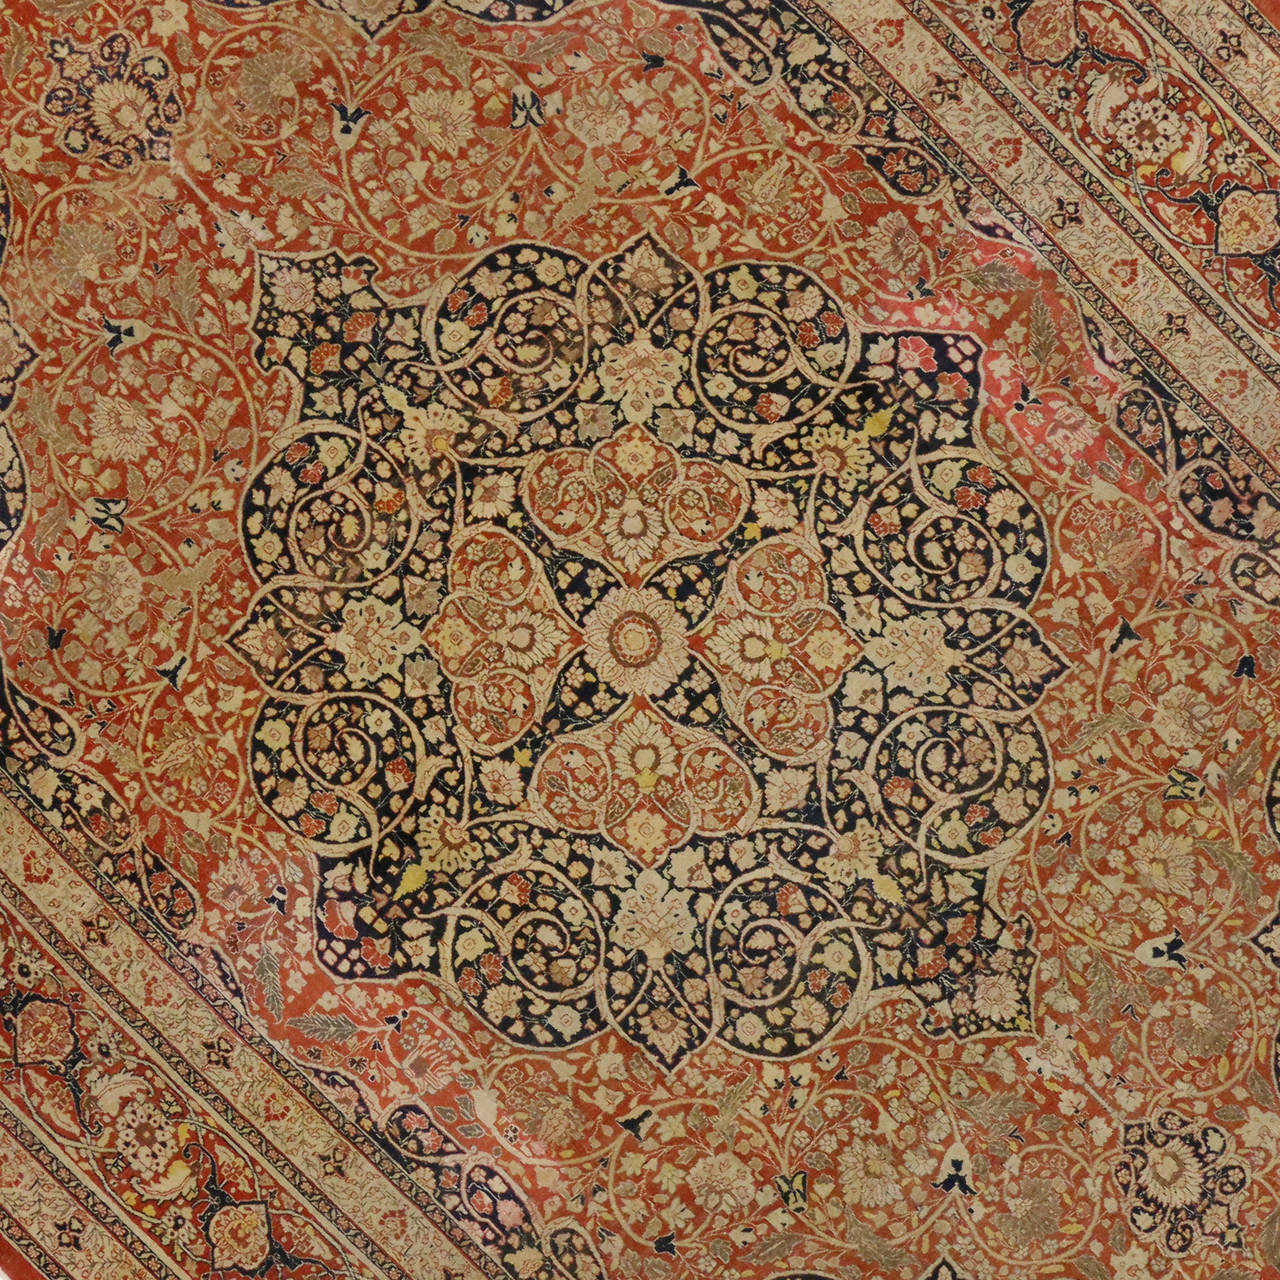 Haji Jalili Antique Persian Tabriz Rug With Art Nouveau